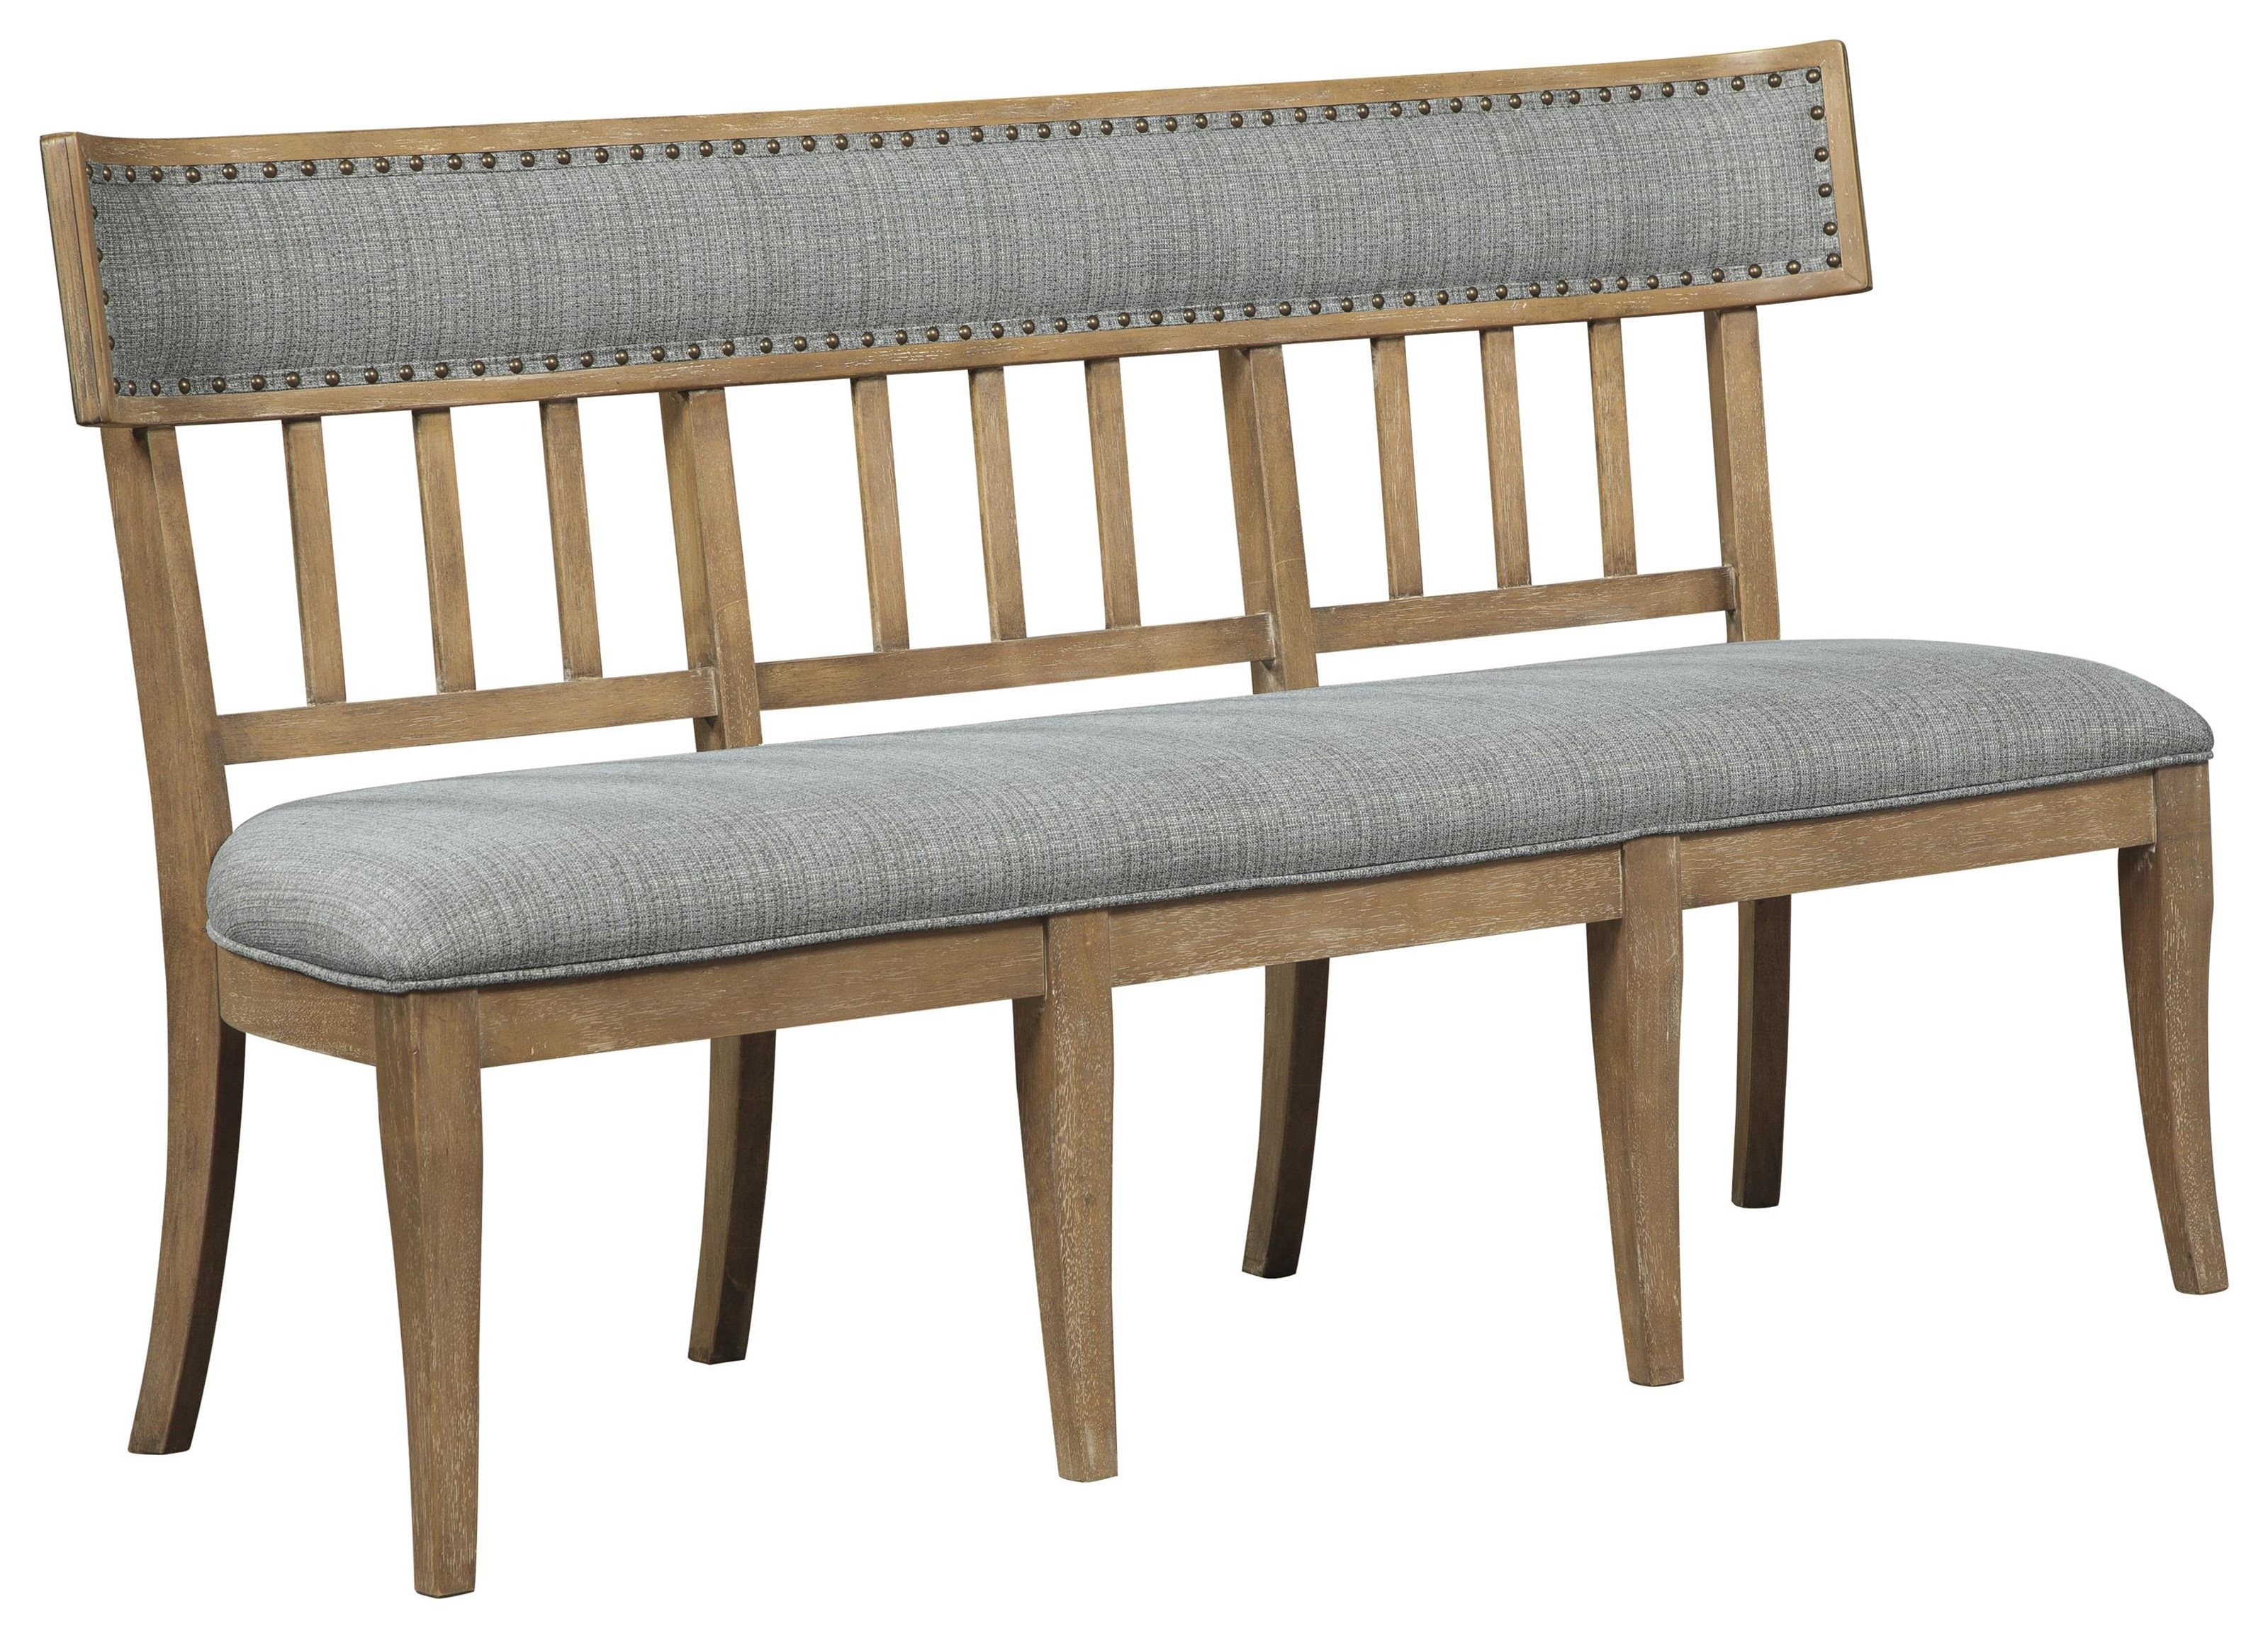 Ollesburg Ollesburg Dining Bench by Ashley at Morris Home